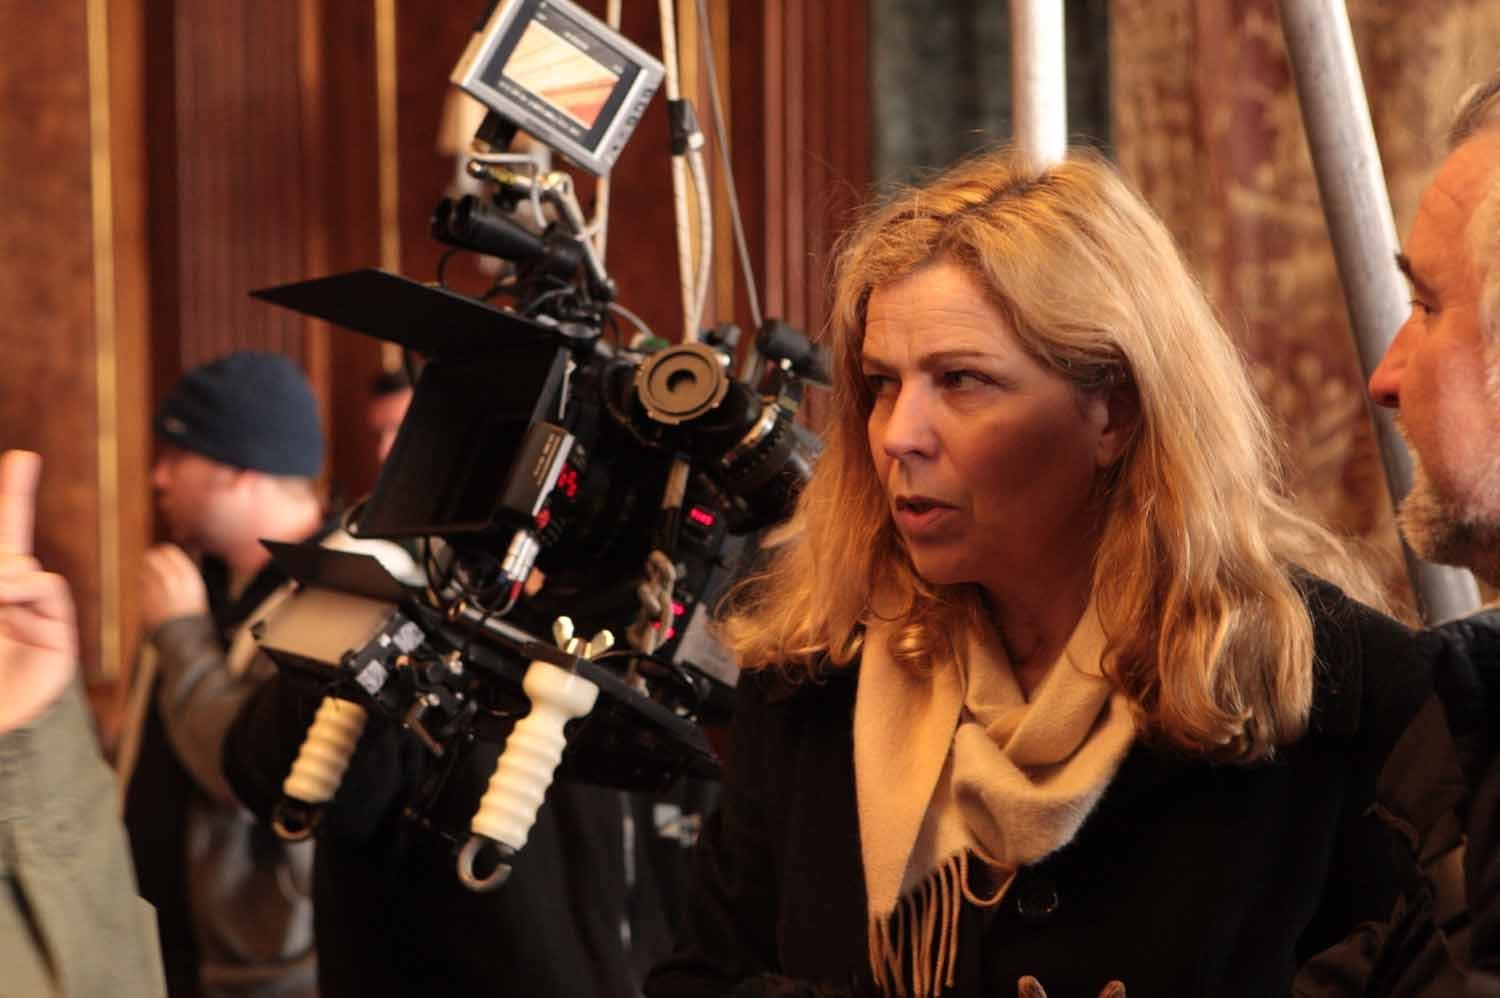 Lone Scherfig: An Education (2009) Behind the Scenes